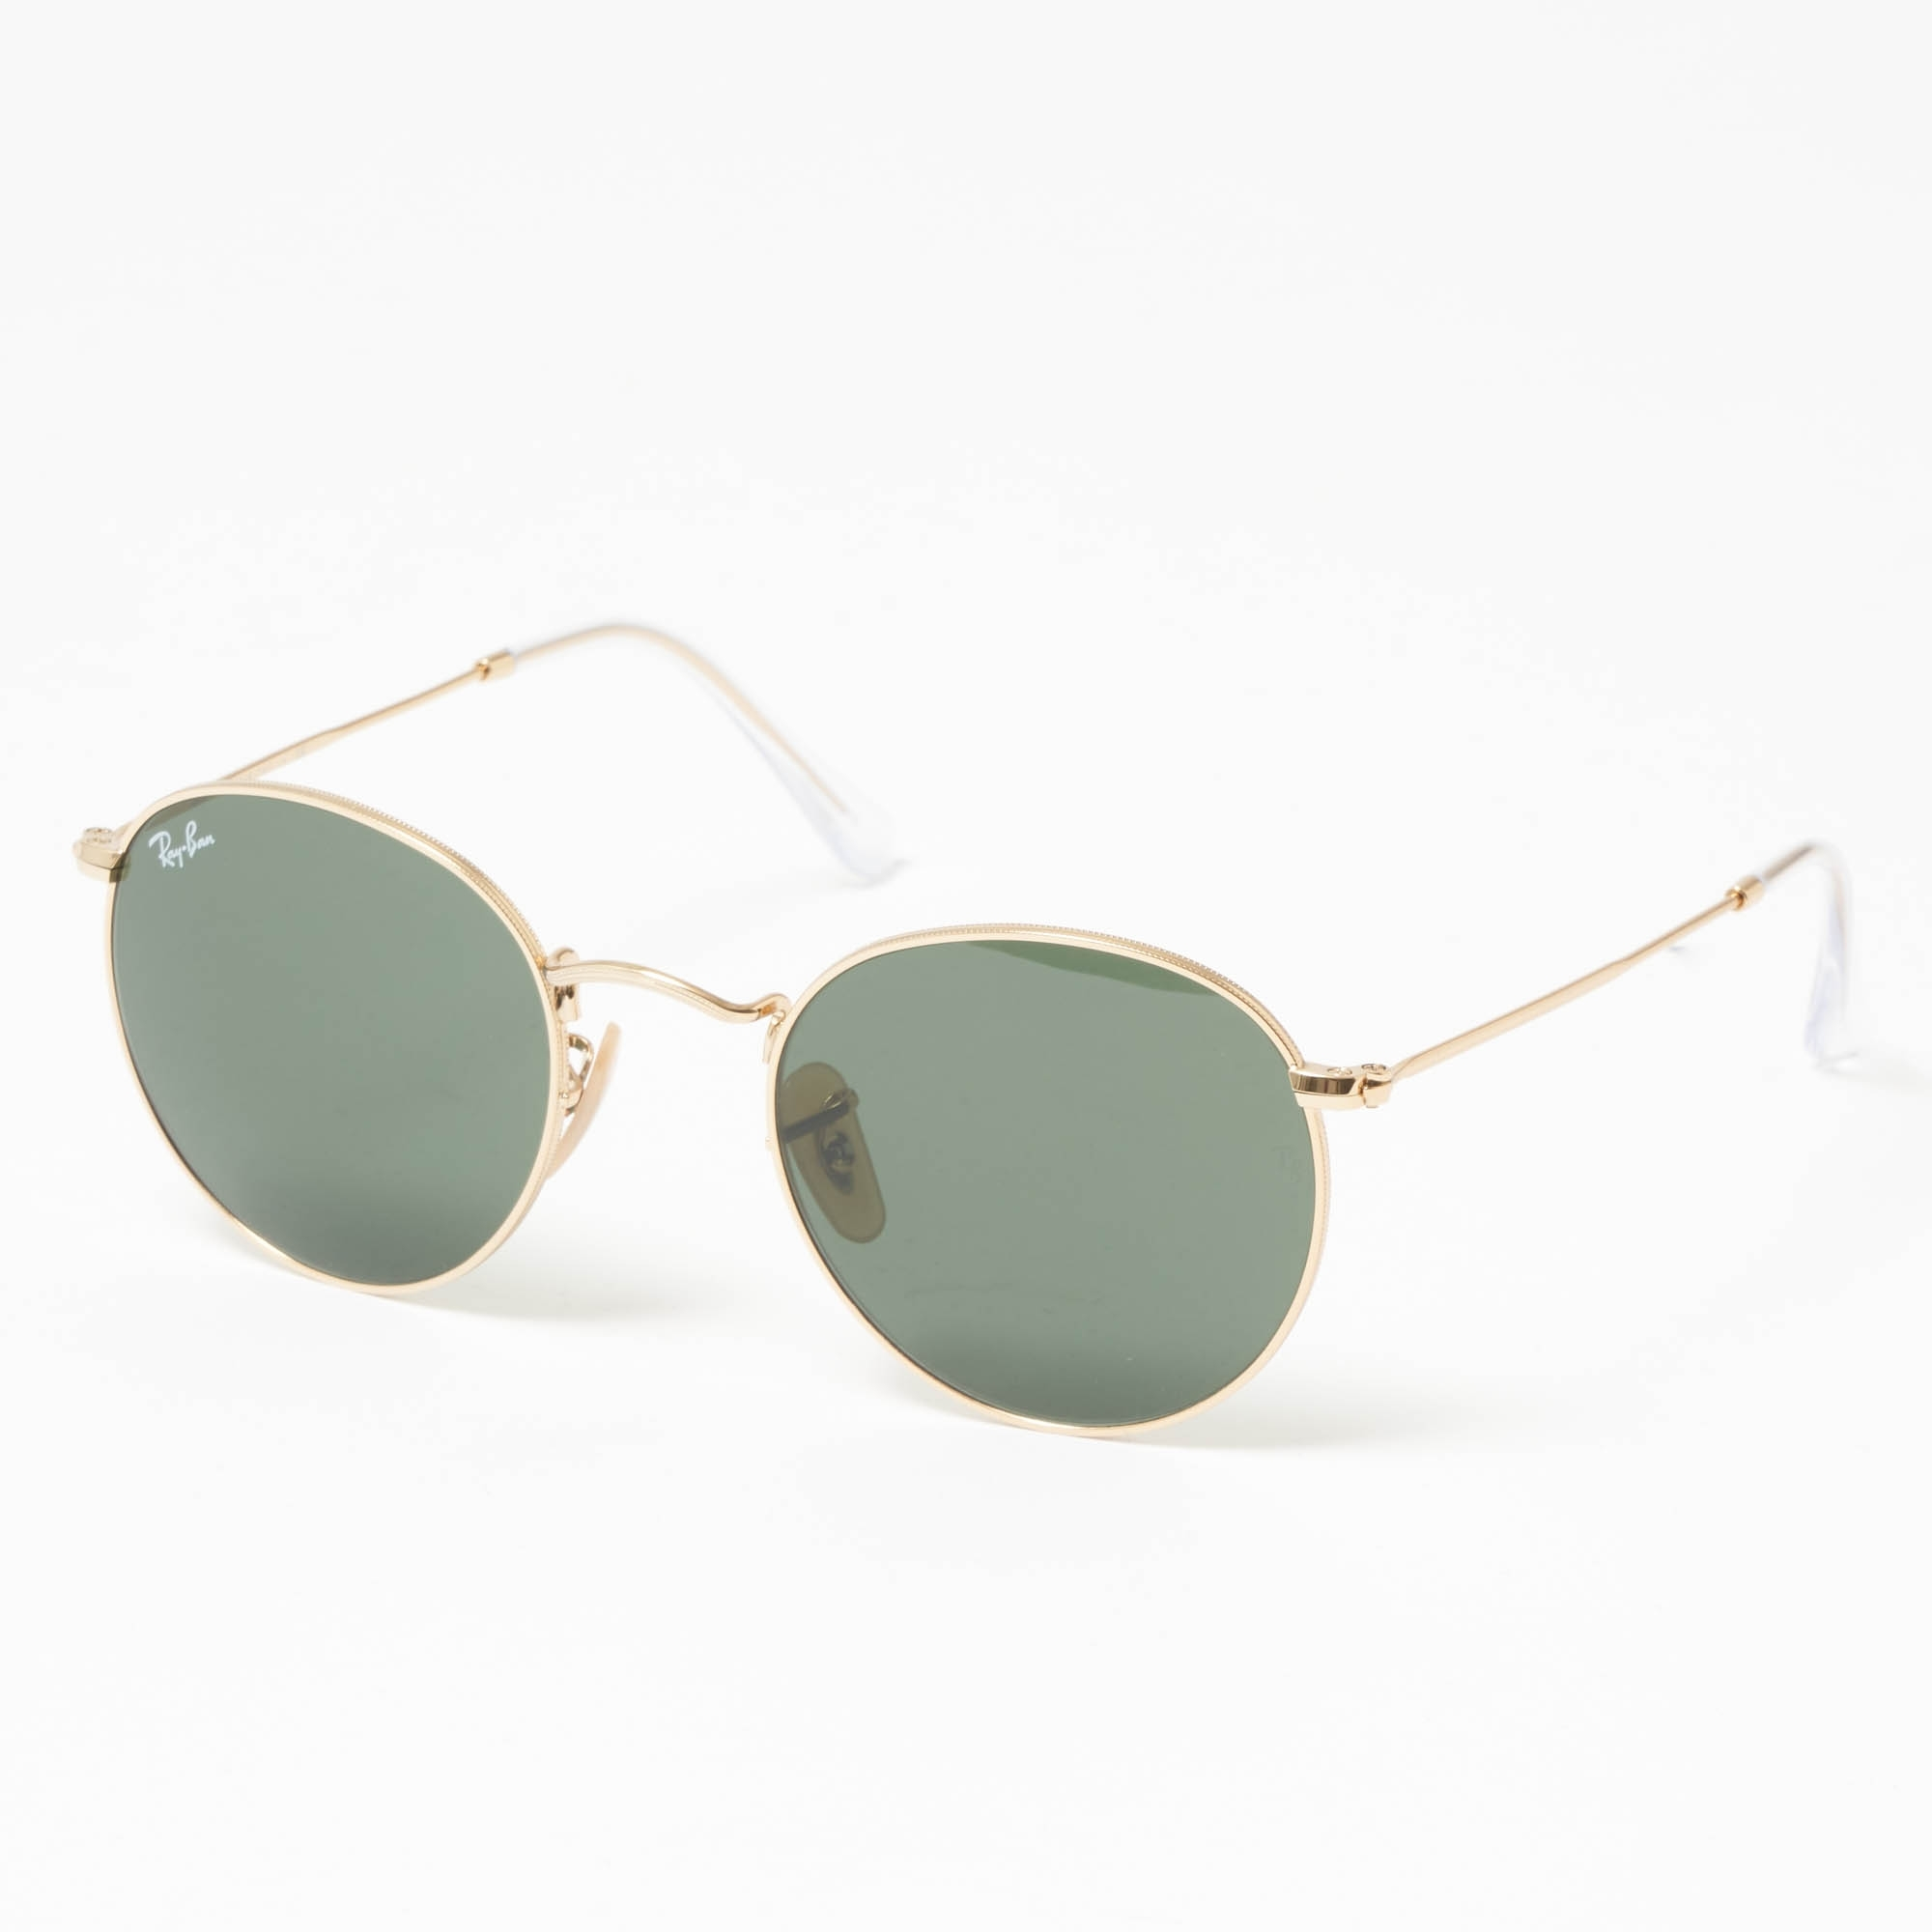 a9c7b1a8c47 Gold Round Metal Sunglasses - Green Classic G-15 Lenses